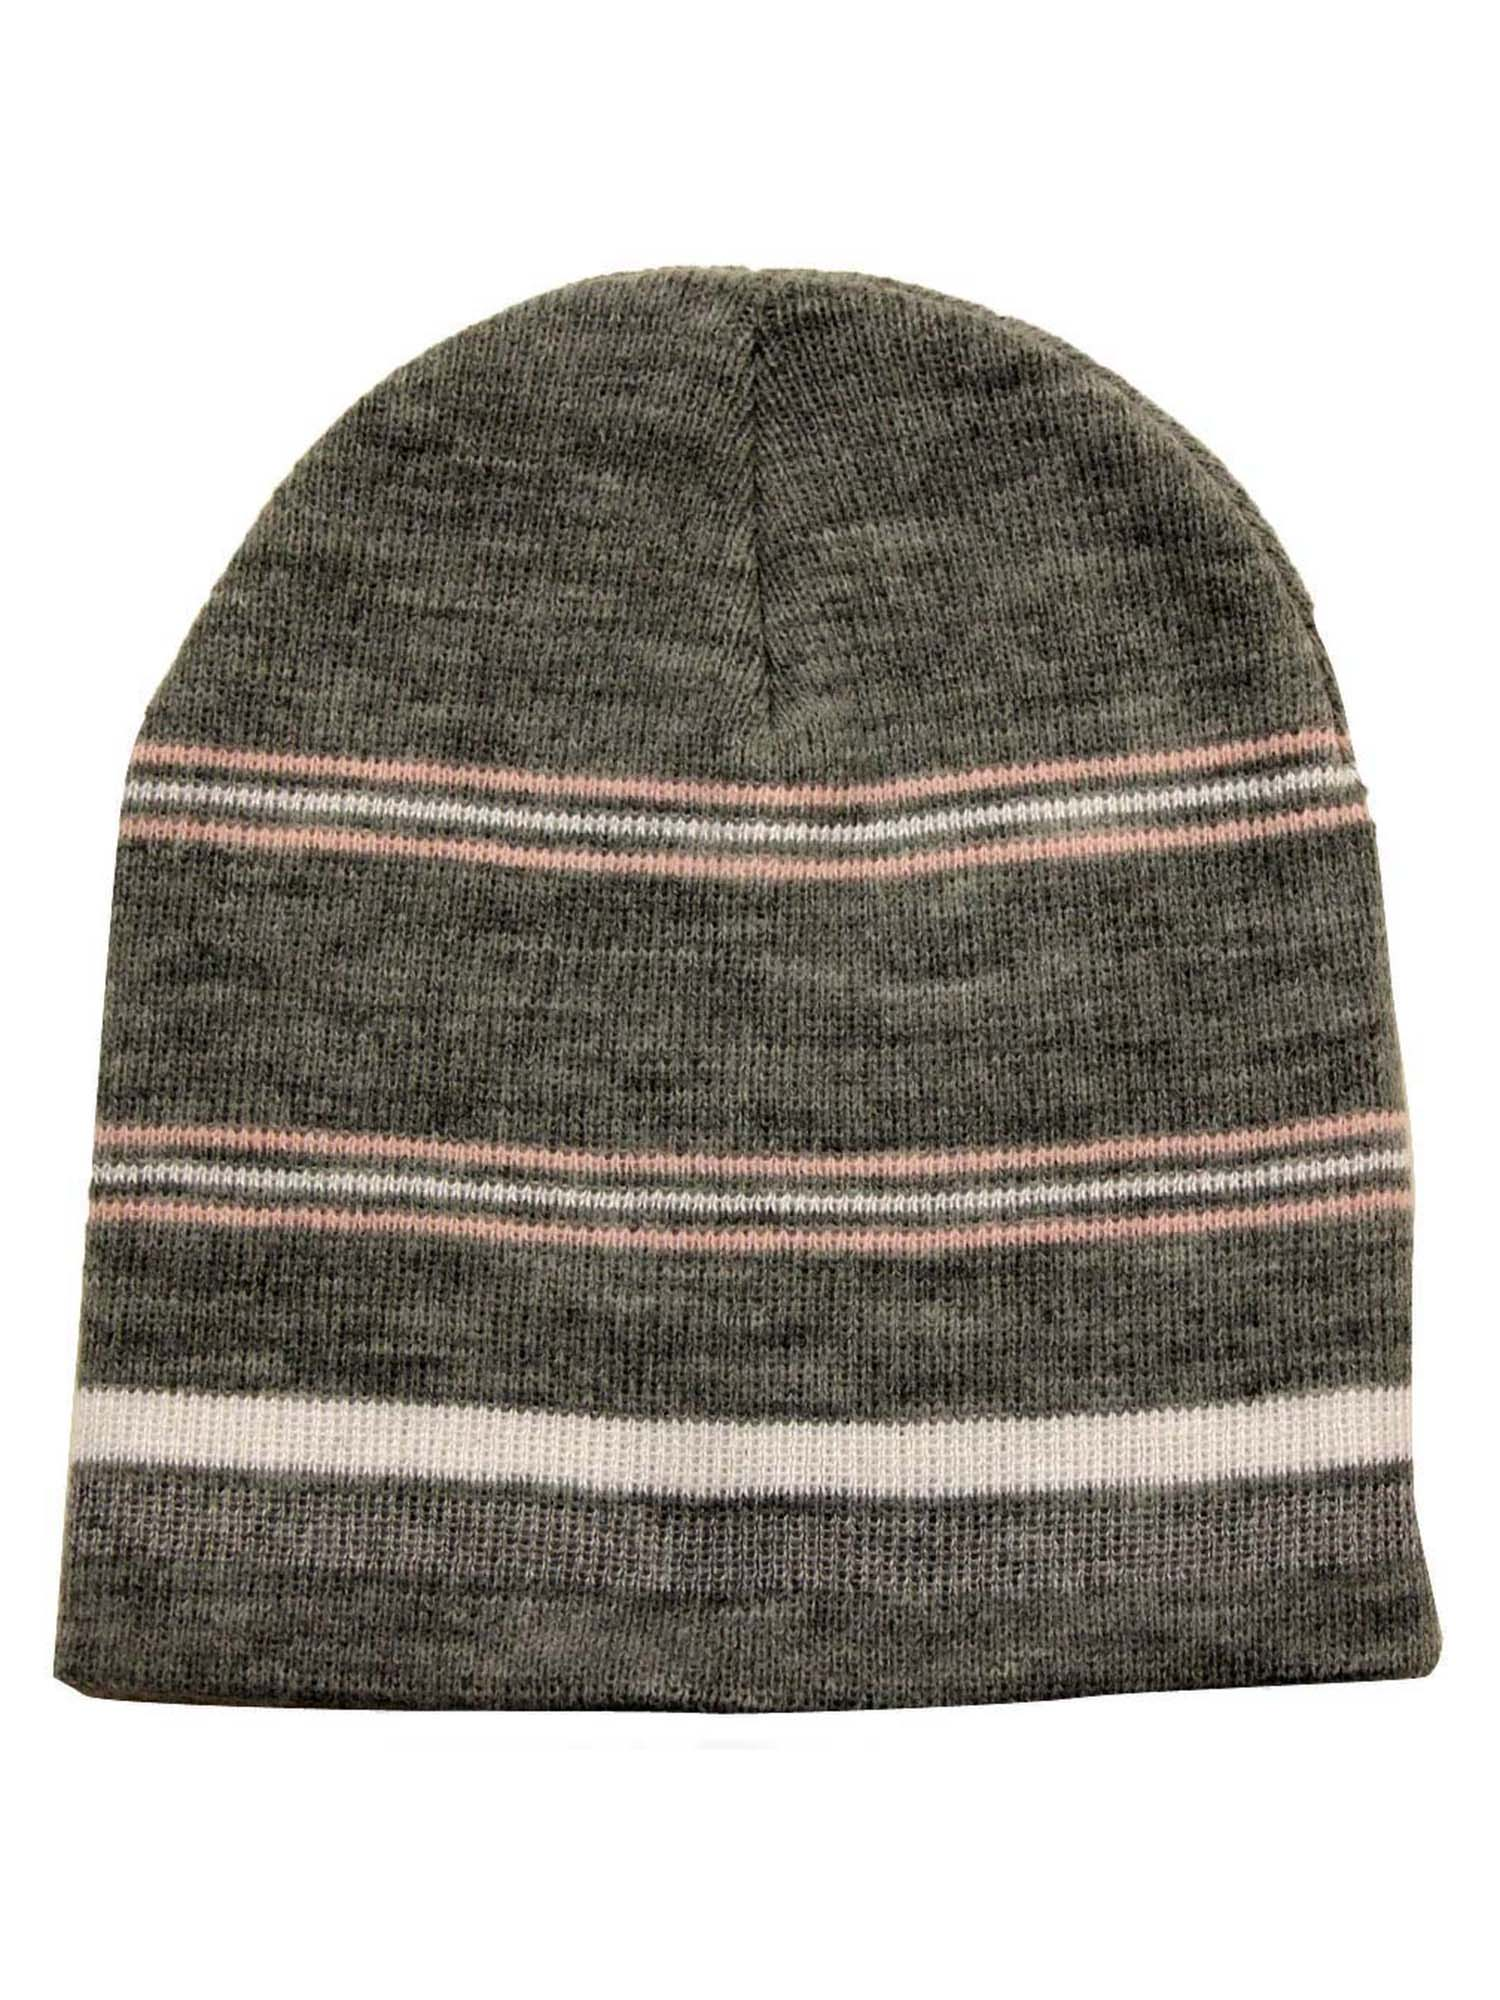 Striped Tight Fitting Beanie Hat